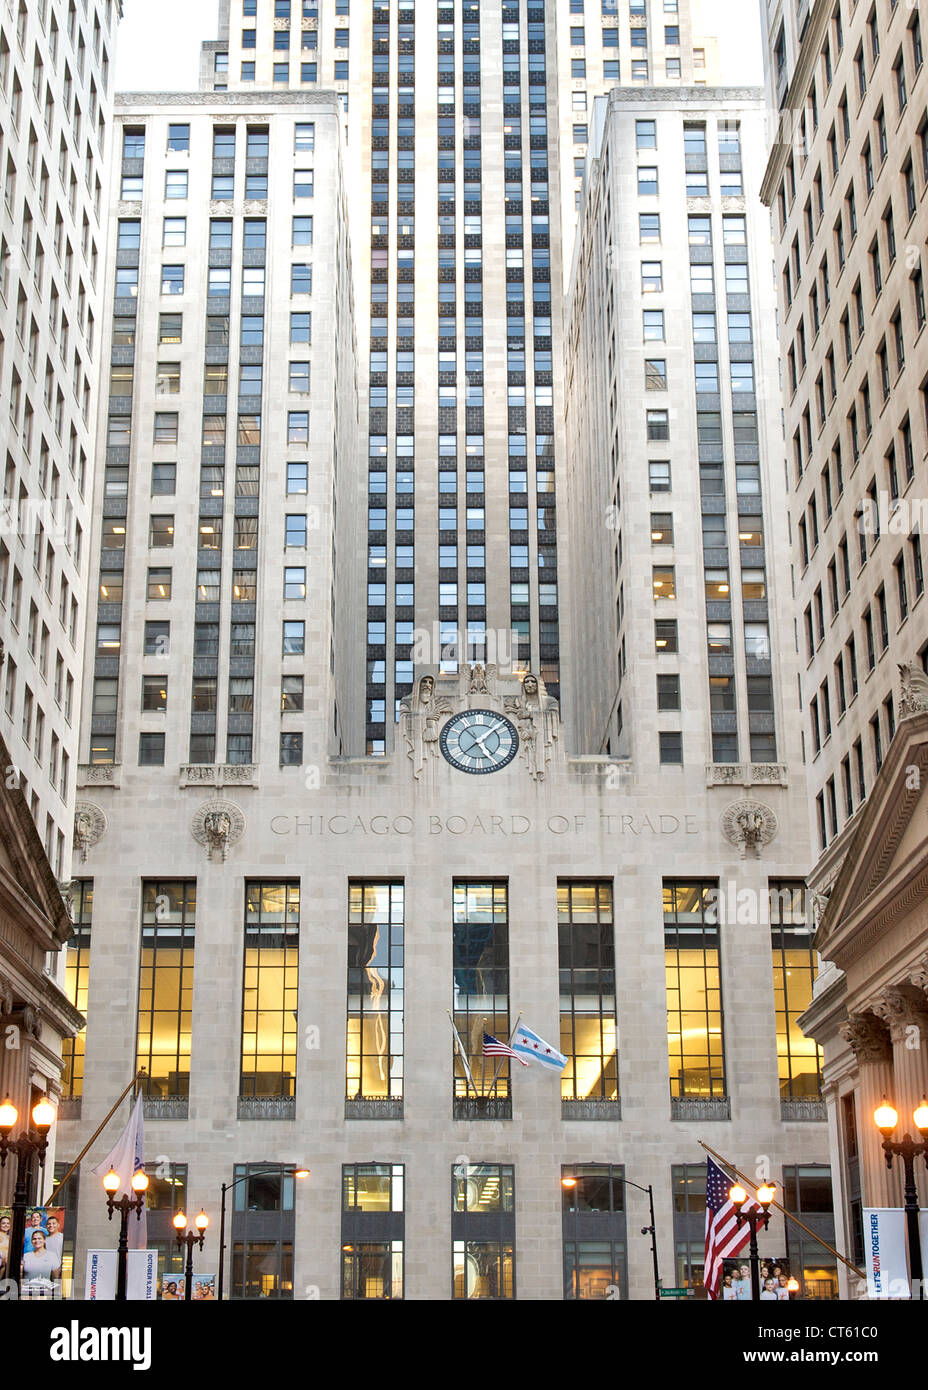 Chicago Board of Trade building in Chicago, Illinois, USA. - Stock Image